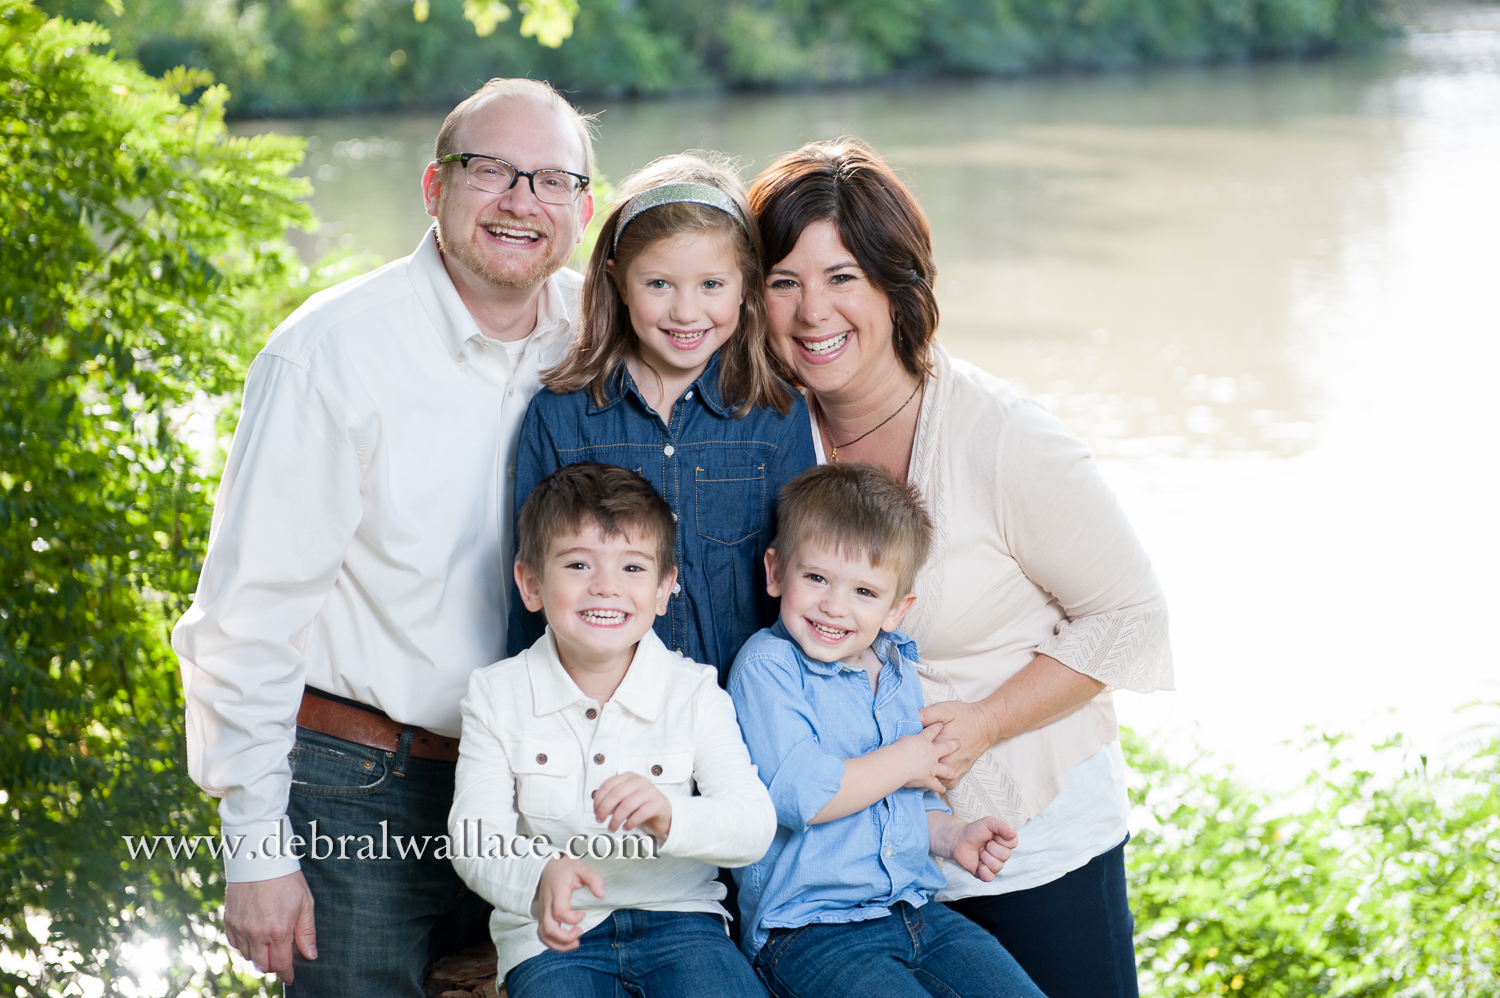 Genesee valley park family mini sessions-0036